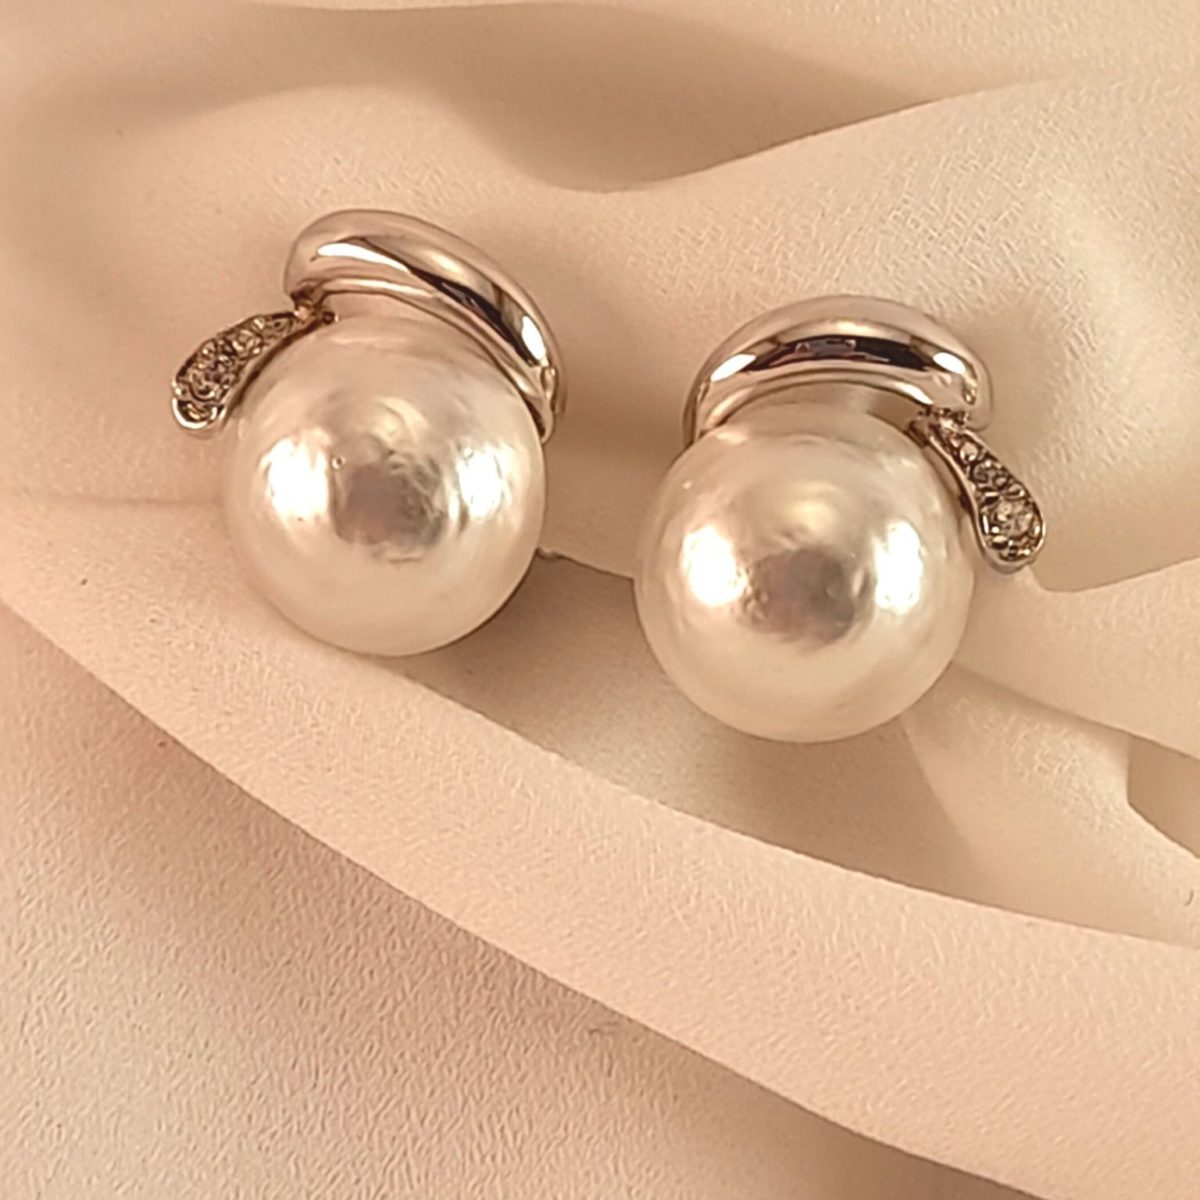 Large Pearl Earrings With Silver Details